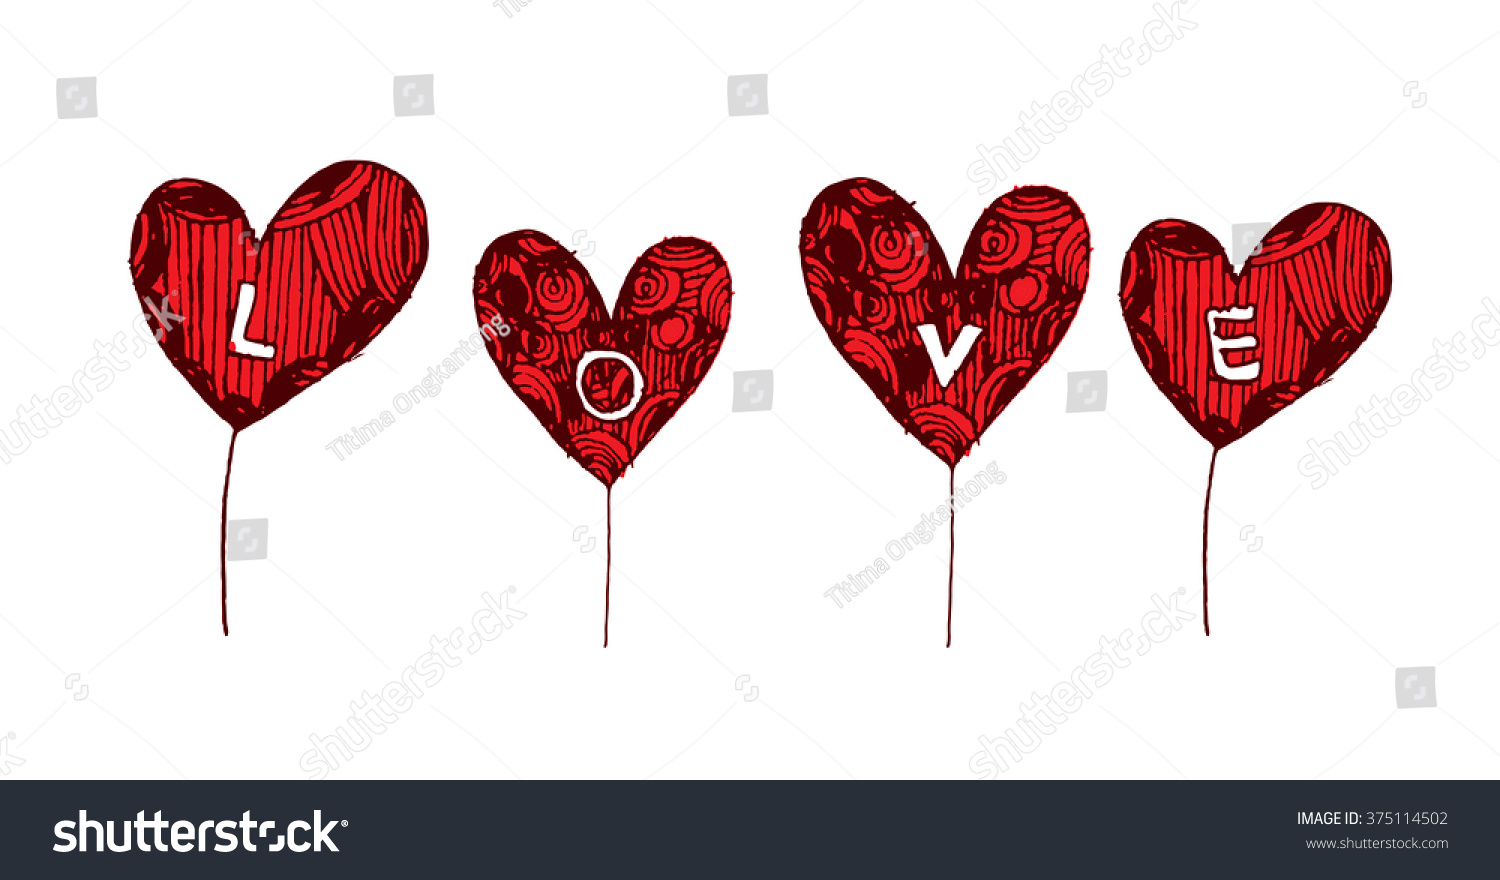 Coloring Page Heart St Valentines Day Stock Vector HD (Royalty Free ...